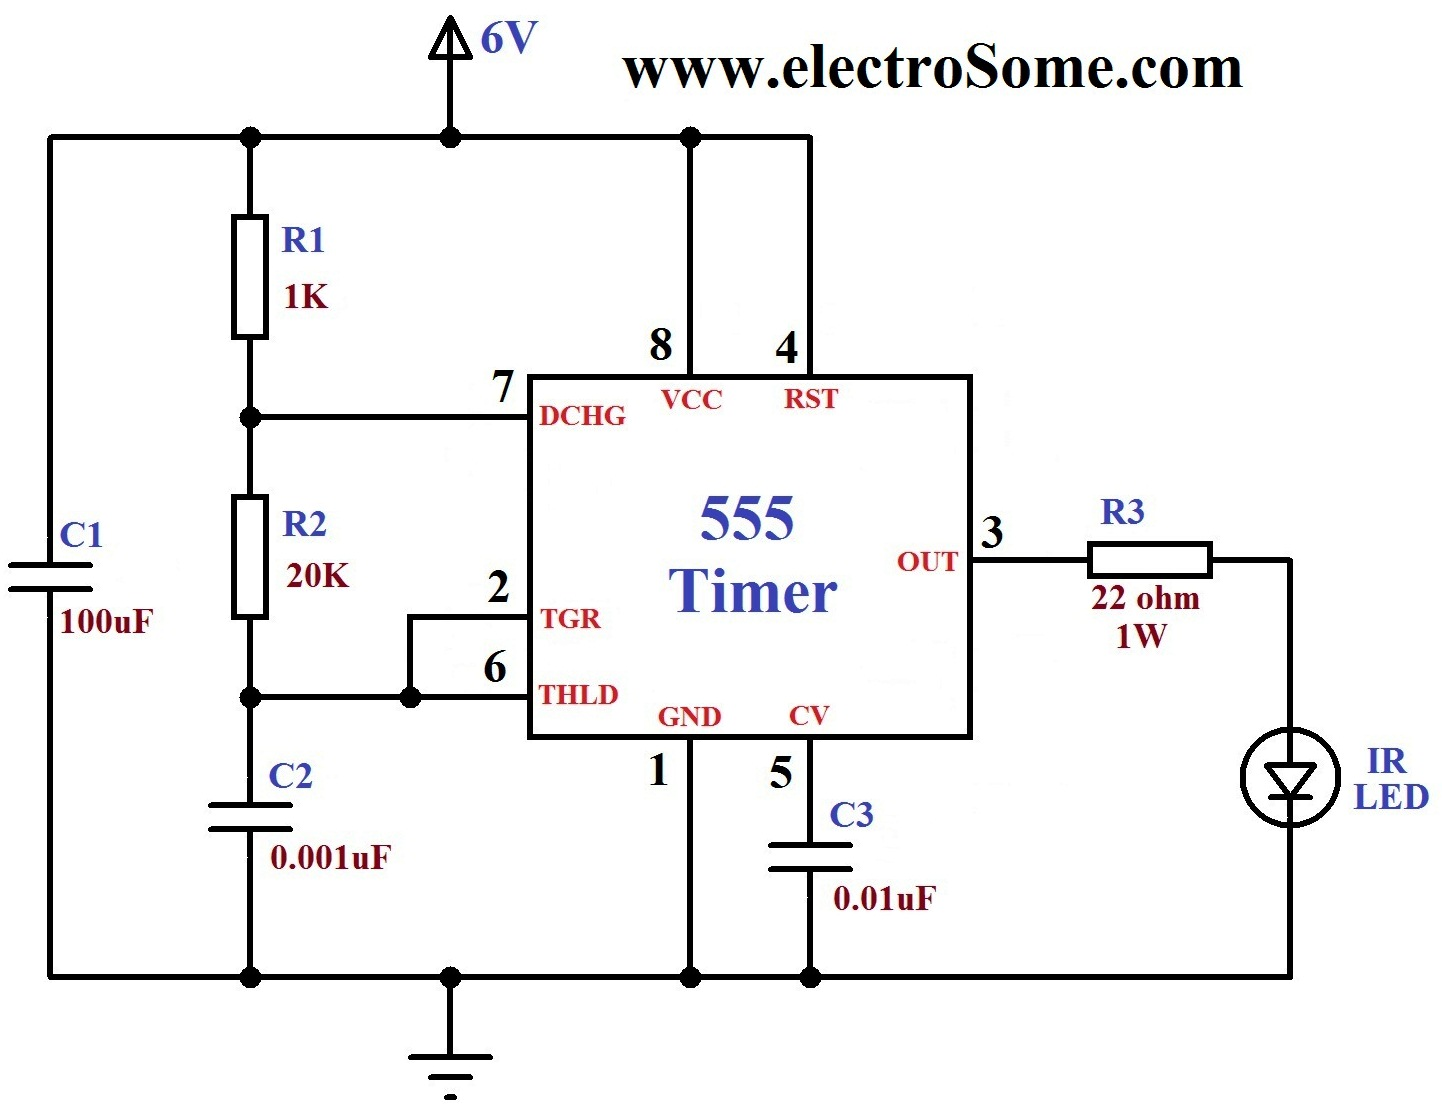 Switch Timer For Bathroom Light 17 in addition Optimizing The Triacs moreover Simple Timing Circuit furthermore Countdown Timer With Alarm further Time Delay Electromechanical Relays. on on delay timer control circuit diagram